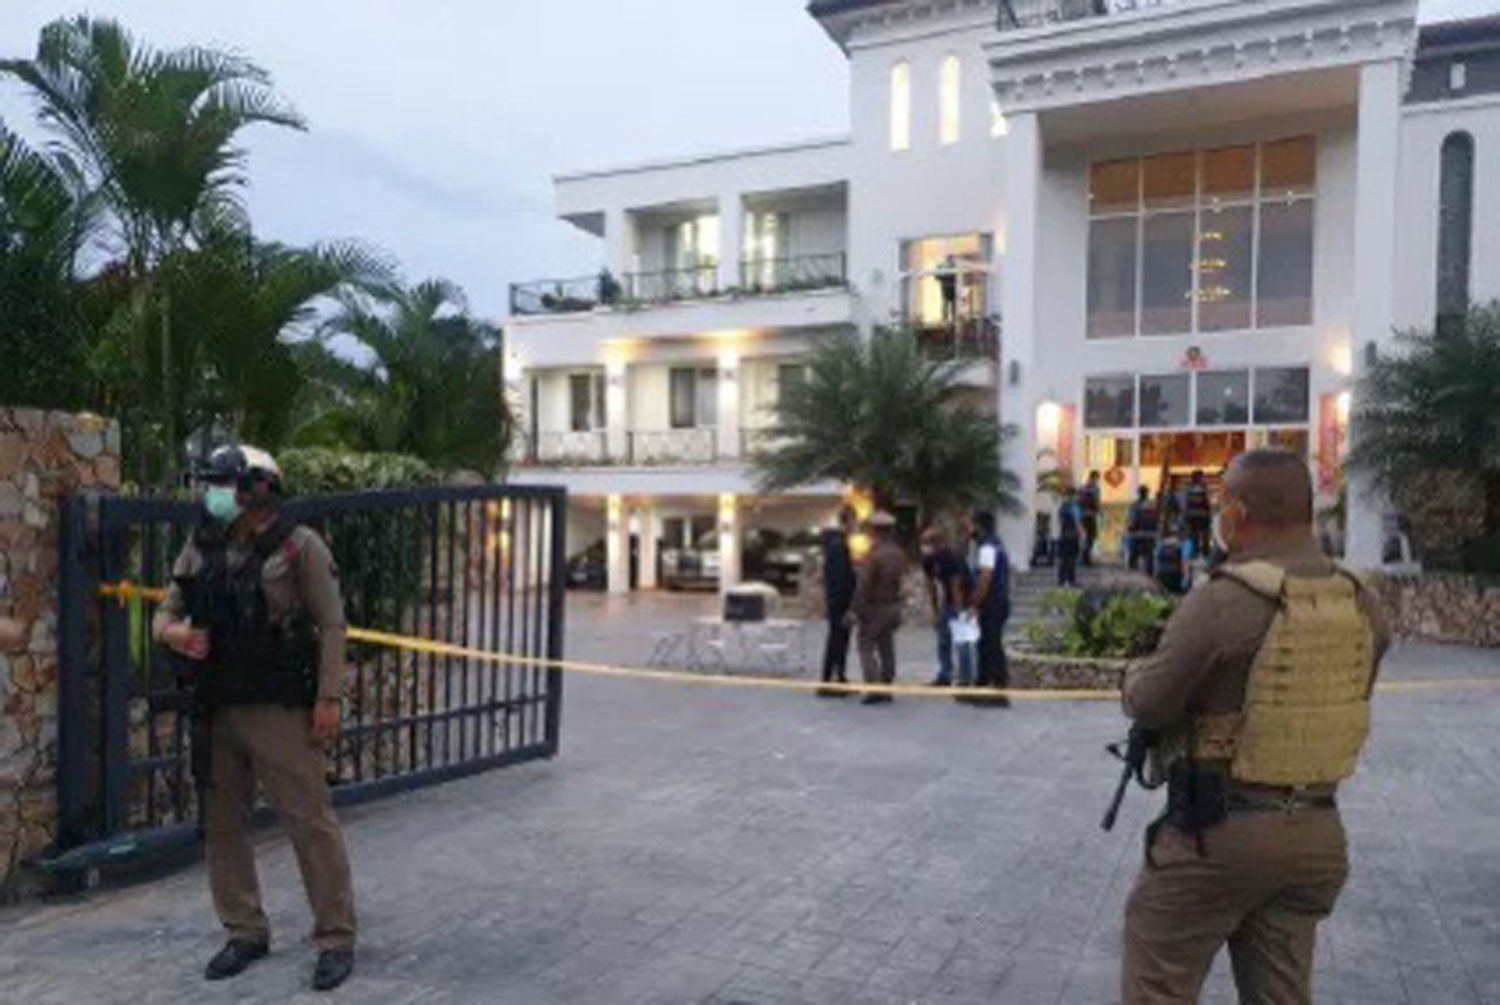 Police guard the luxury house at a golf course in Bang Lamung district, Chon Buri, where two officers were shot on Wednesday while executing an arrest warrant. A Chinese man was later arrested. (Photo supplied/ Wassayos Ngamkham)